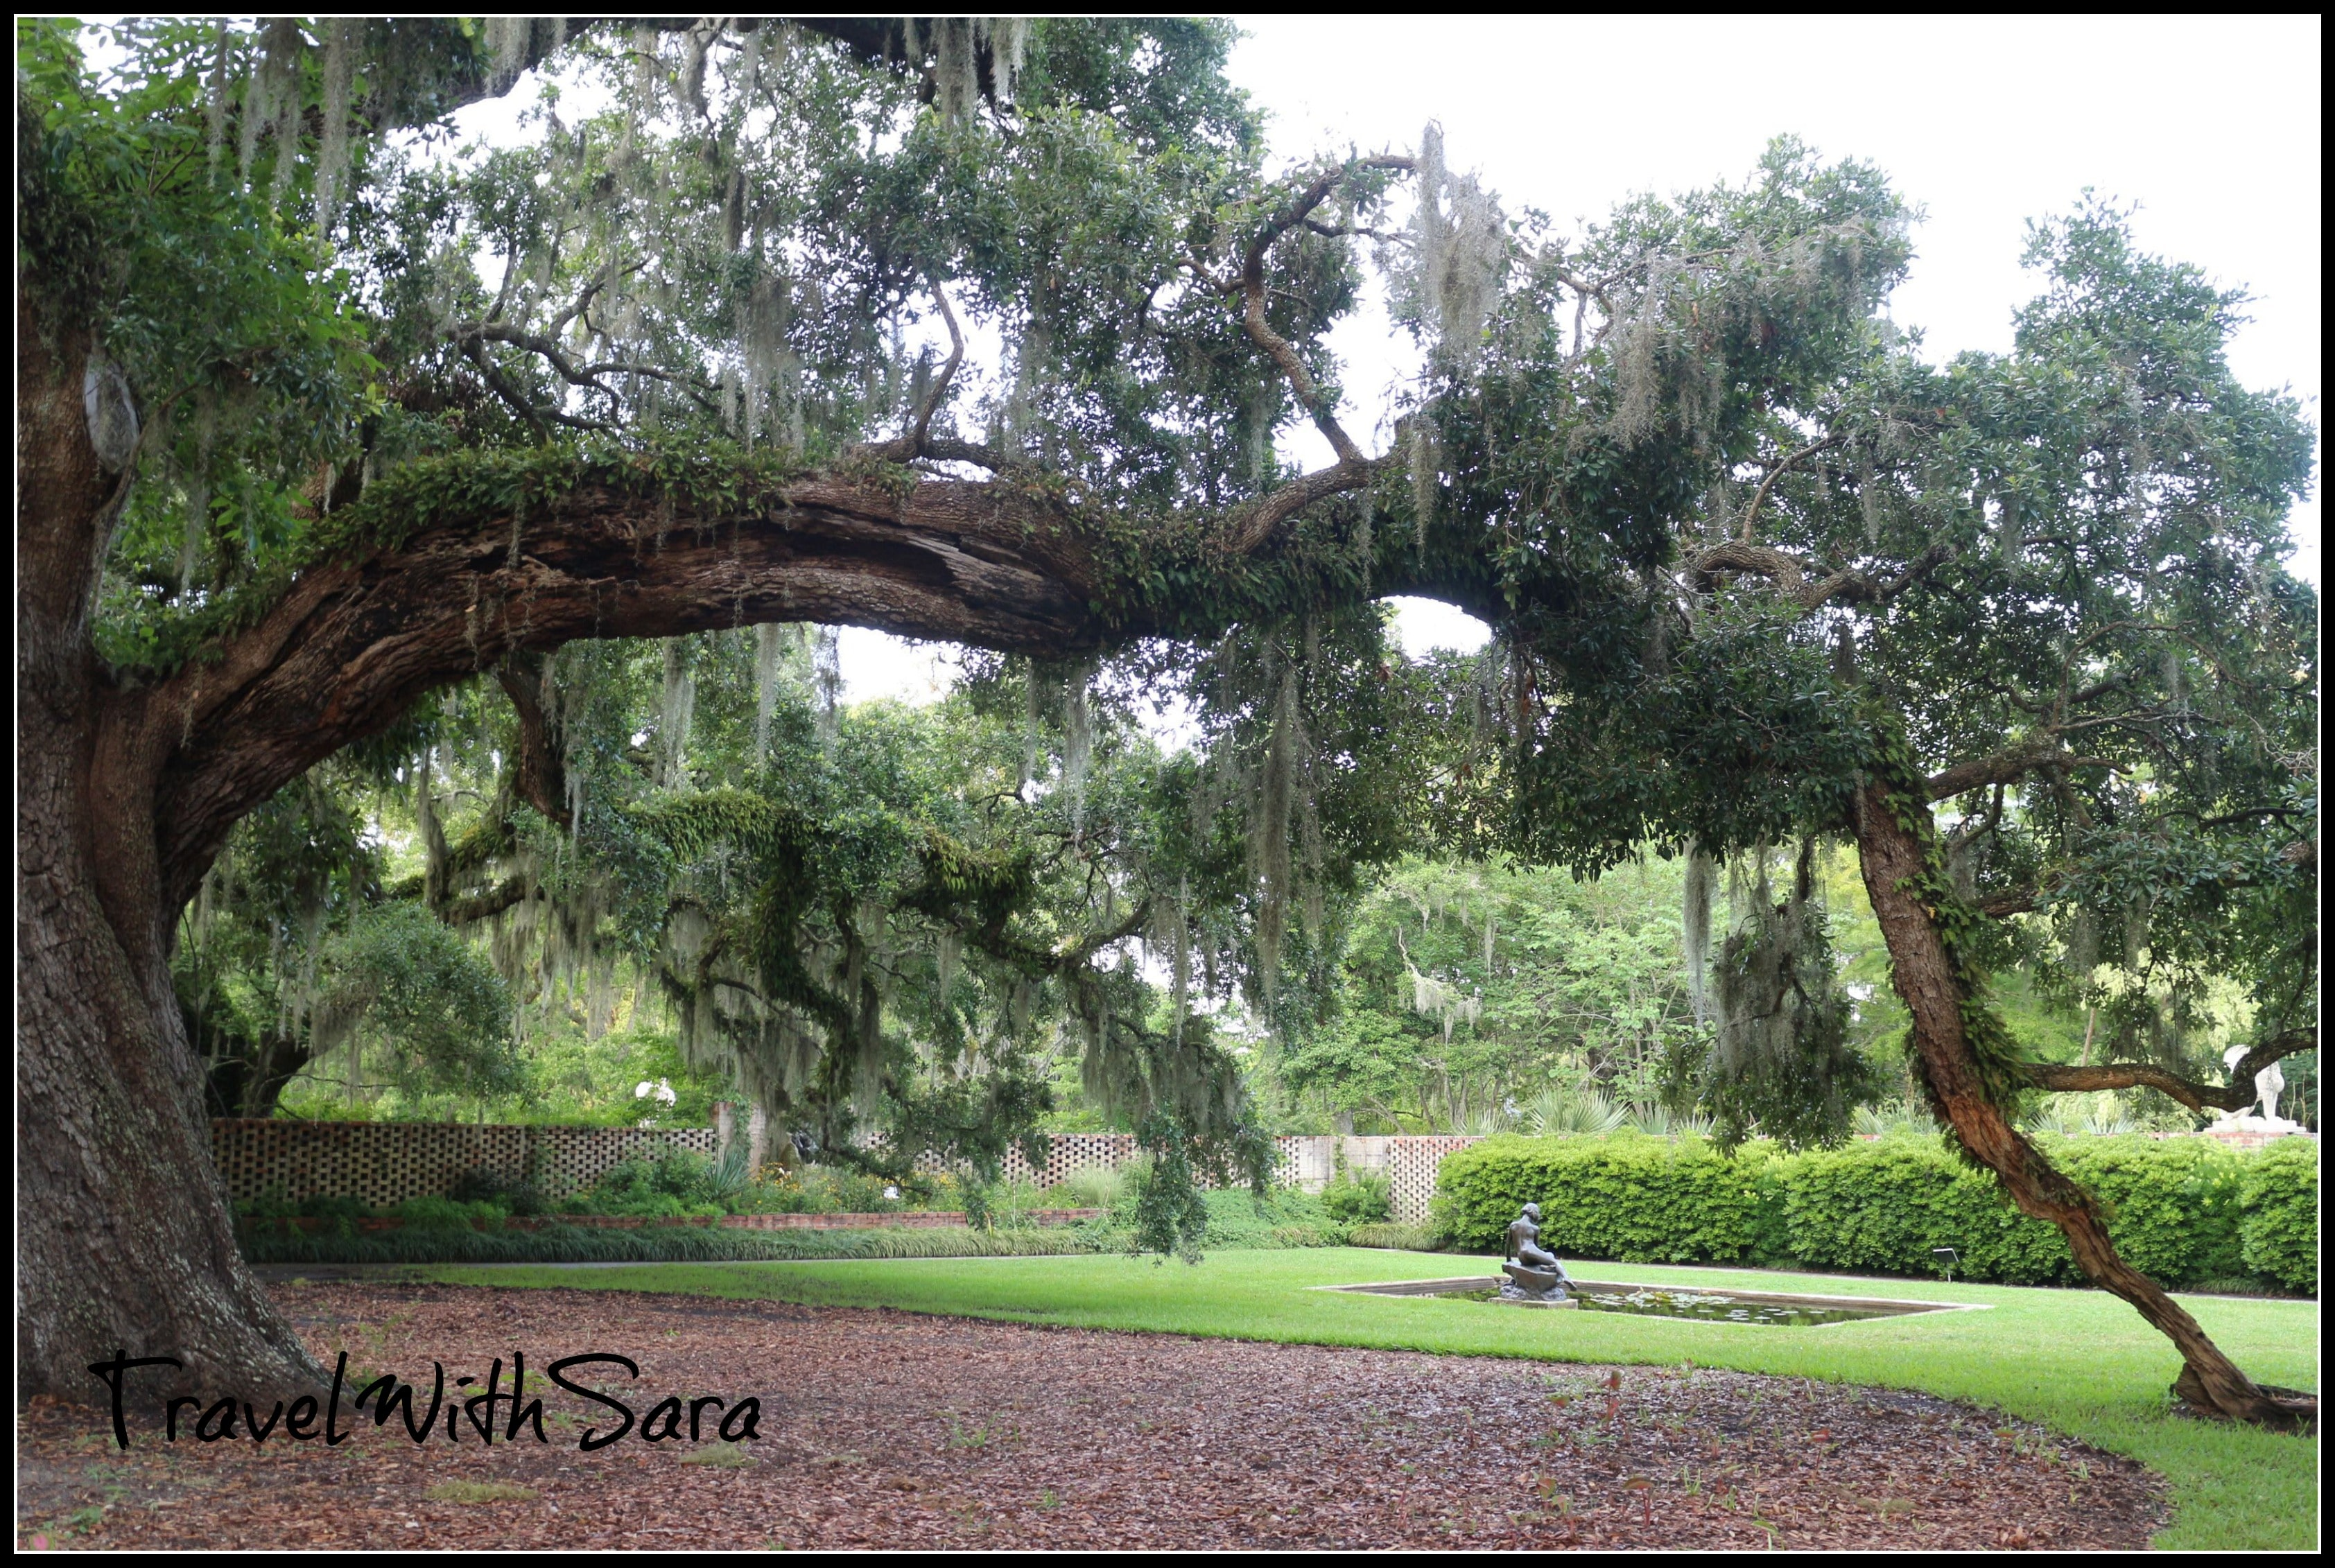 Crown Reef Resort And Brookgreen Gardens: Myrtle Beach – Travel With ...